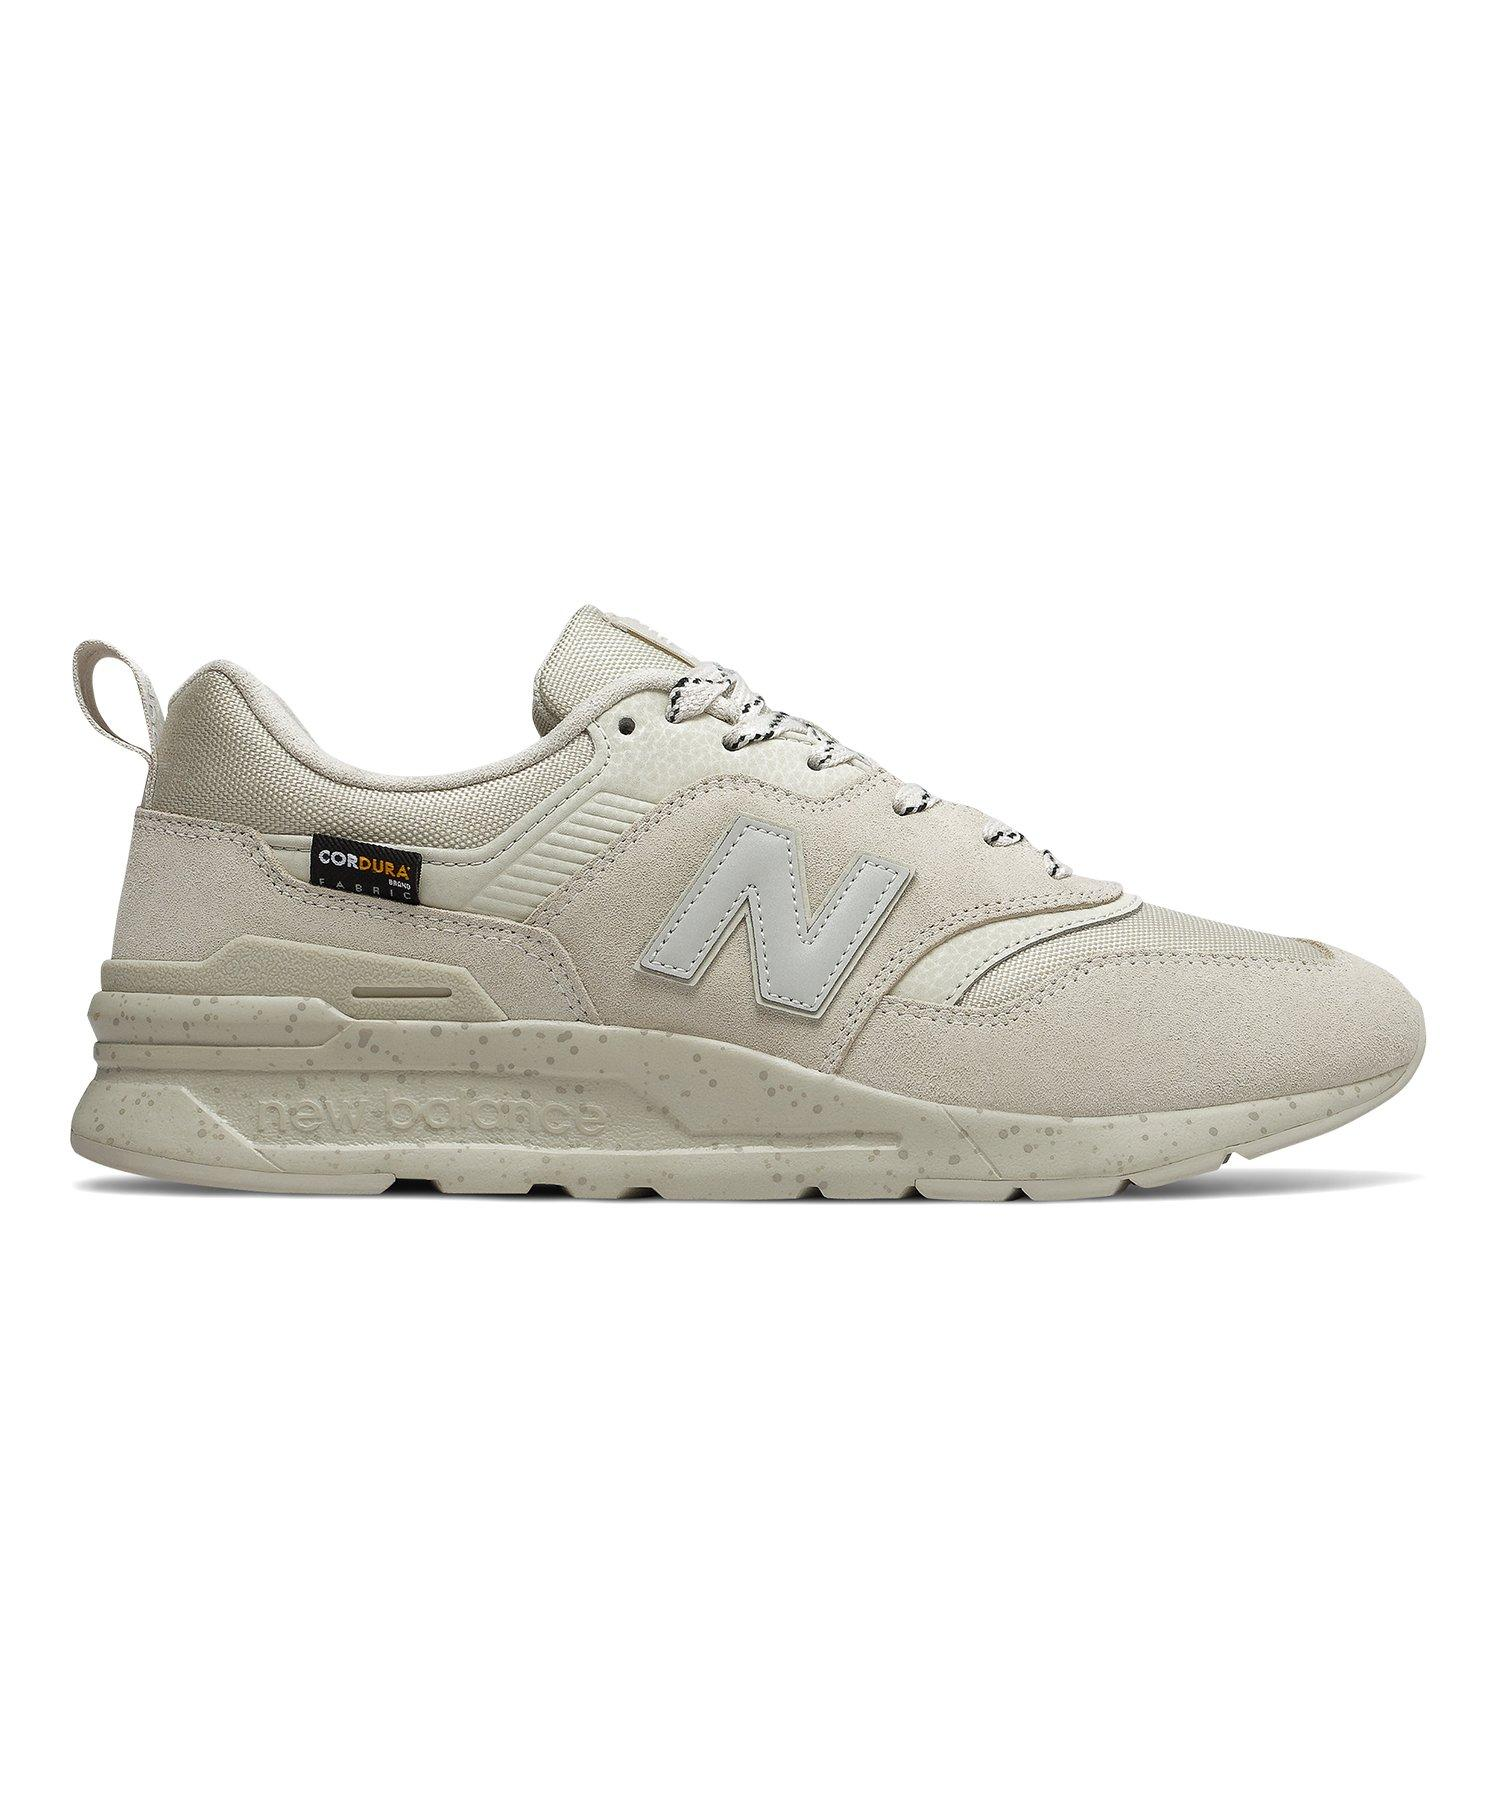 New Balance Rubber 997 Cordura In Off White for Men - Lyst